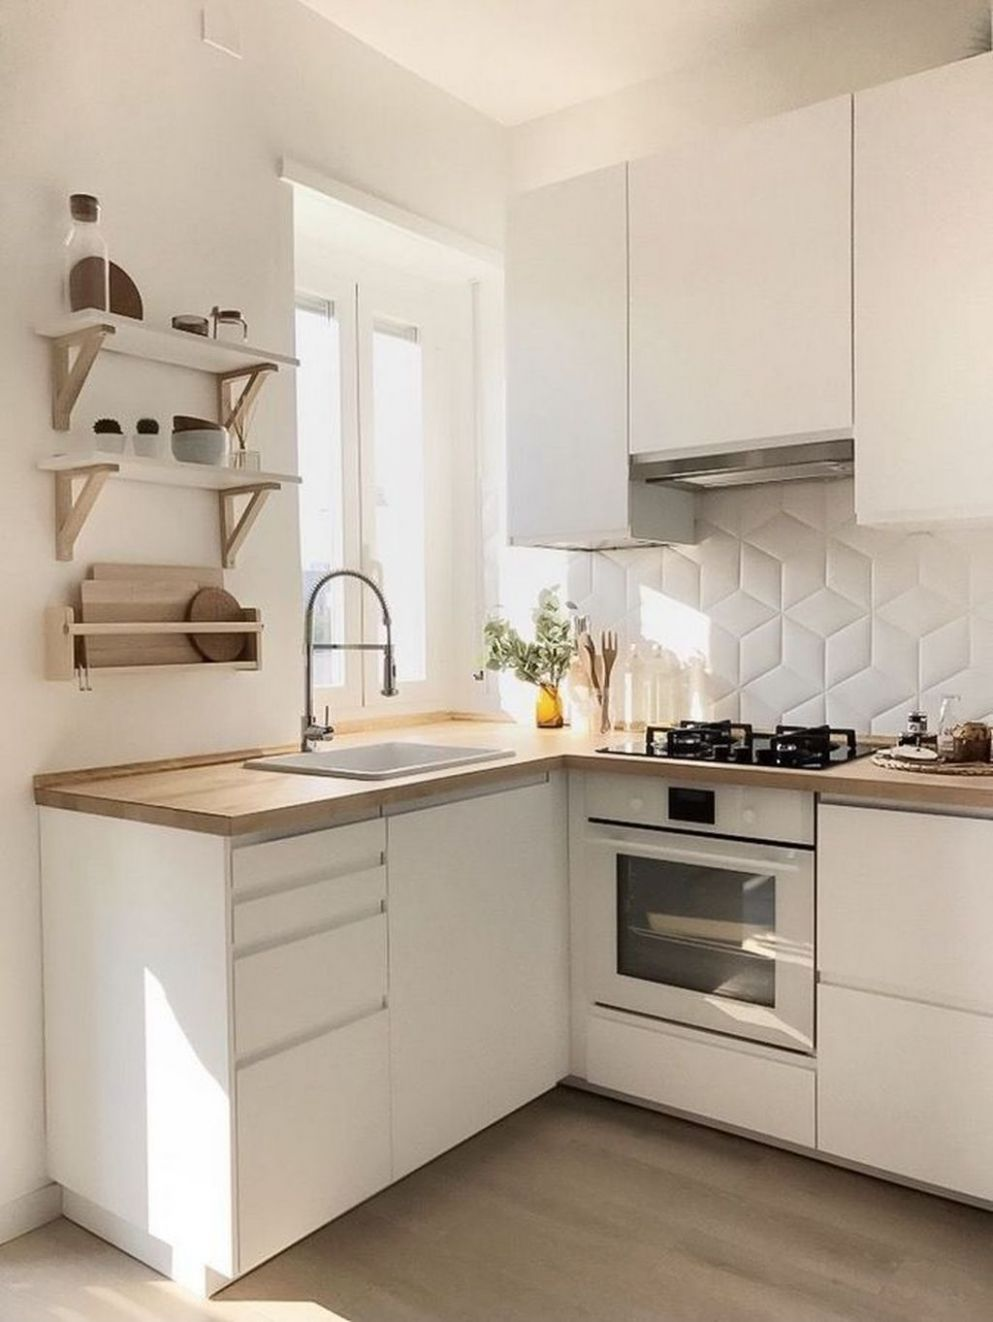 9 Amazing Small Apartment Kitchen Ideas | Small apartment kitchen - apartment kitchen design ideas pictures